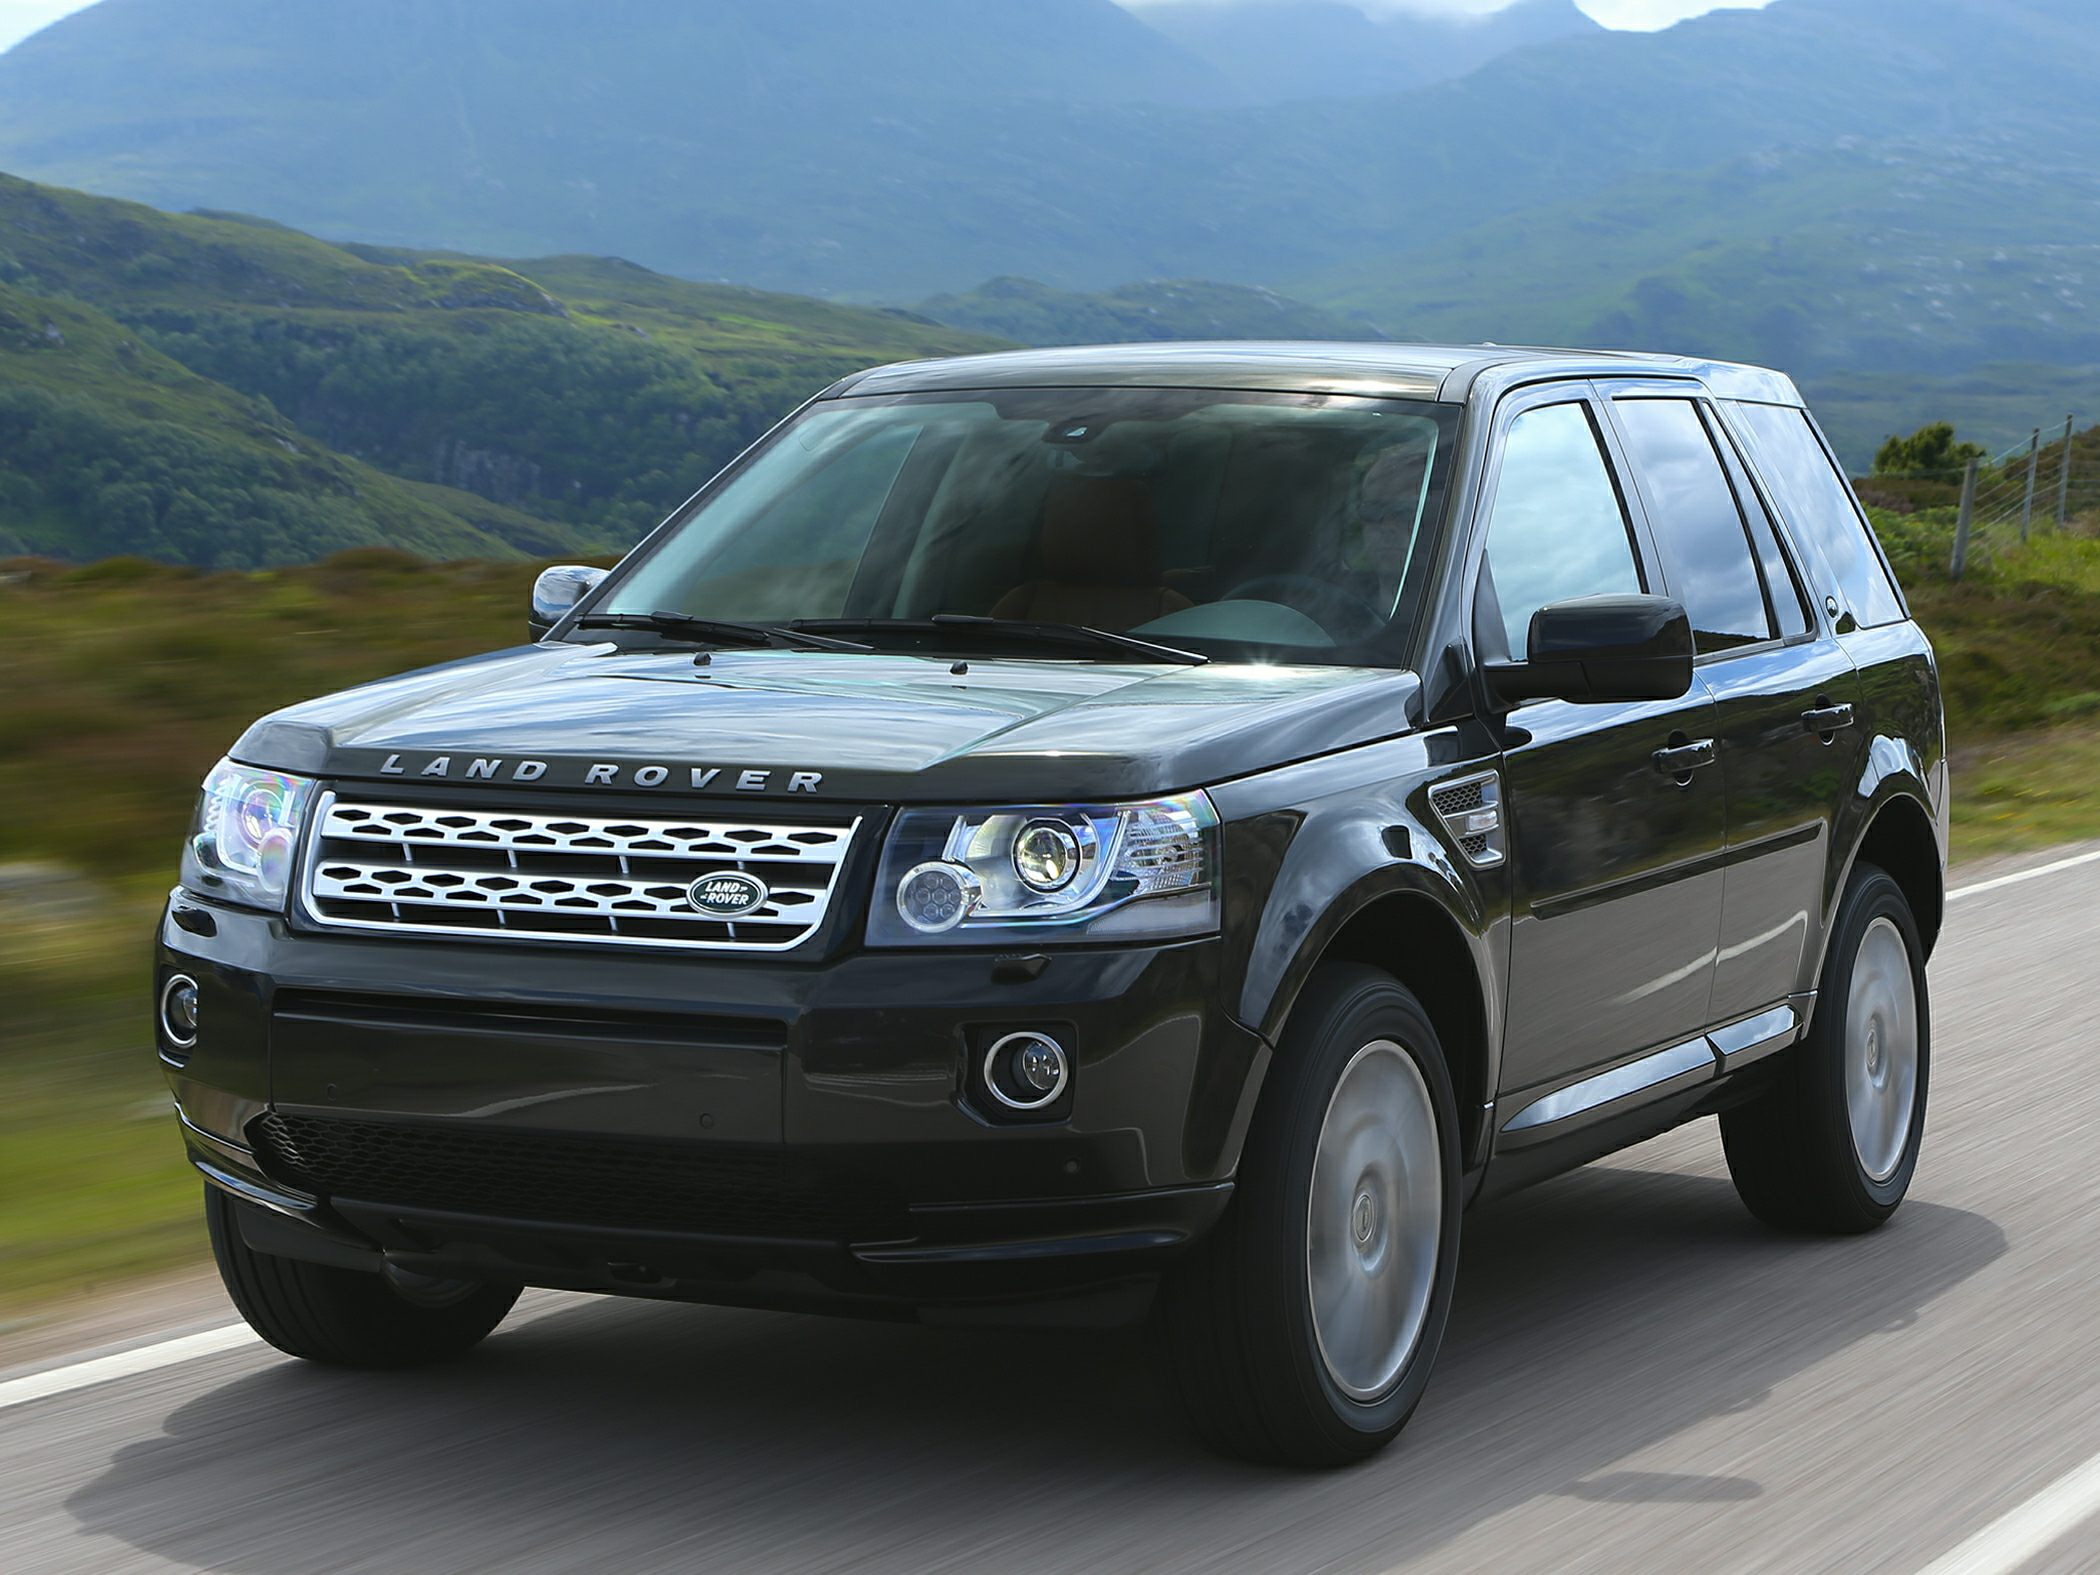 photos photo informations for land articles landrover bestcarmag base com rover suv sale makes